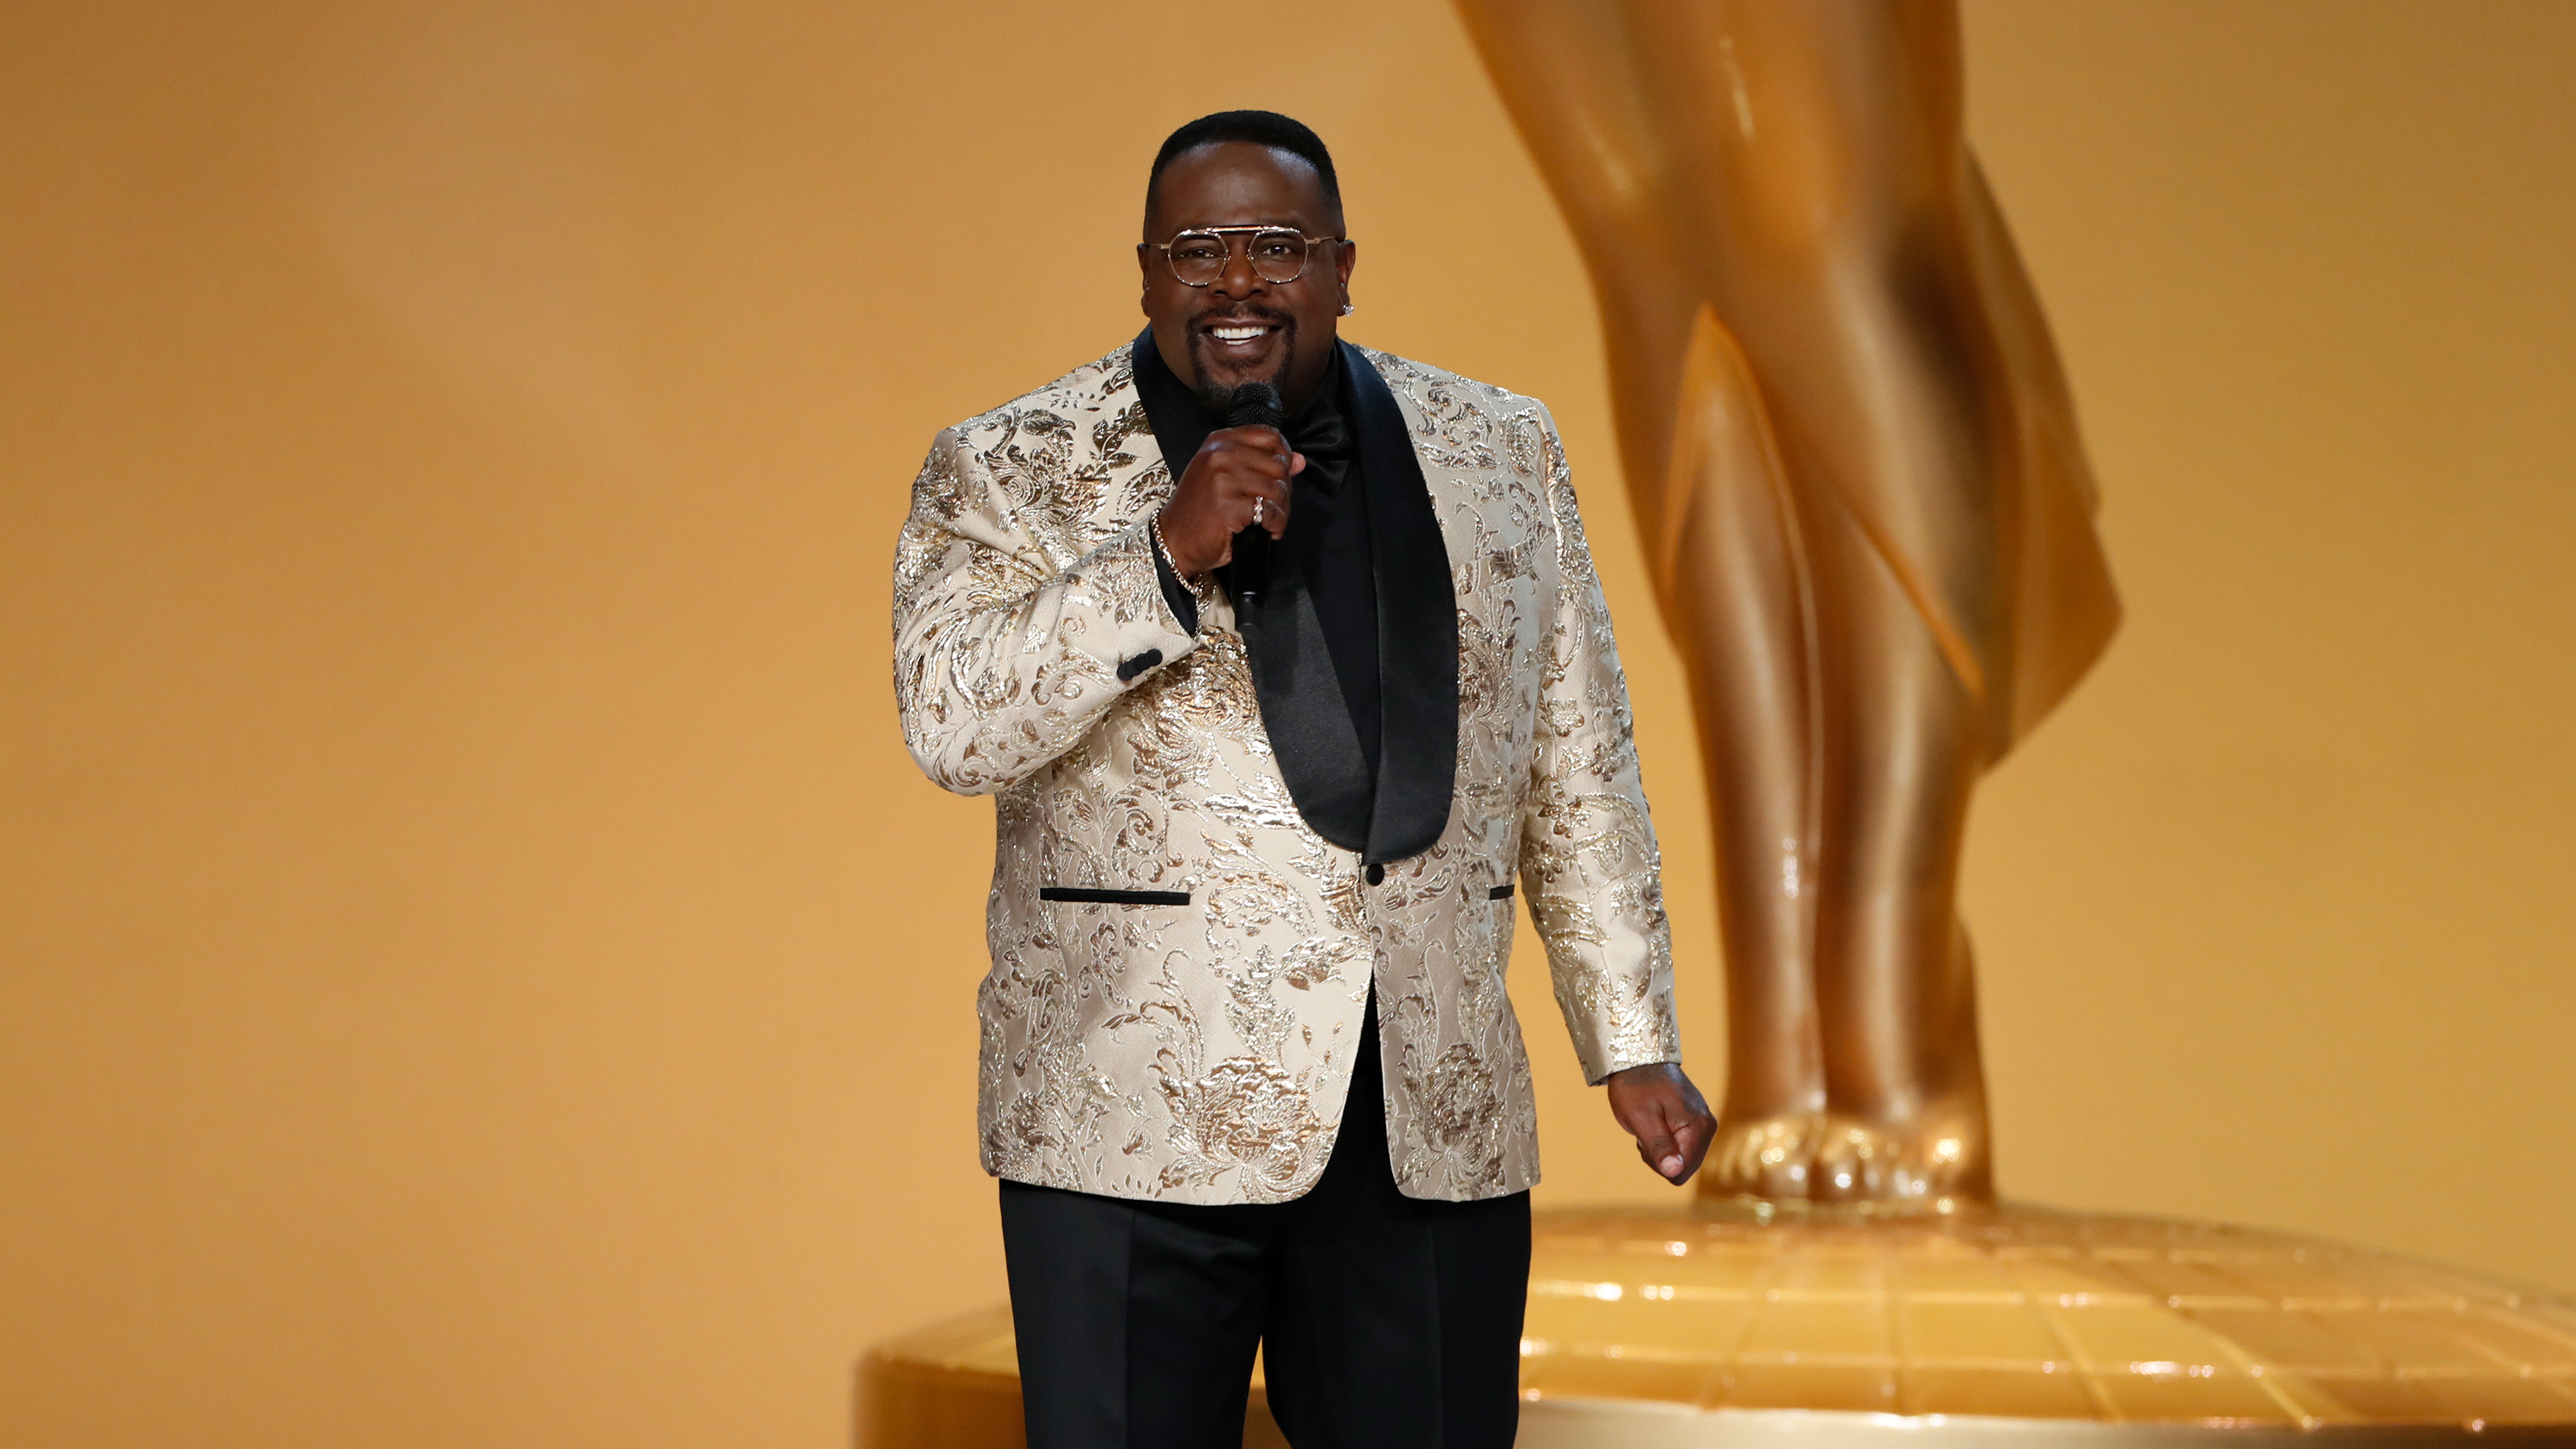 Cedric the Entertainer hosts the 73rd Emmy Awards on Sunday, September 19, in Los Angeles.